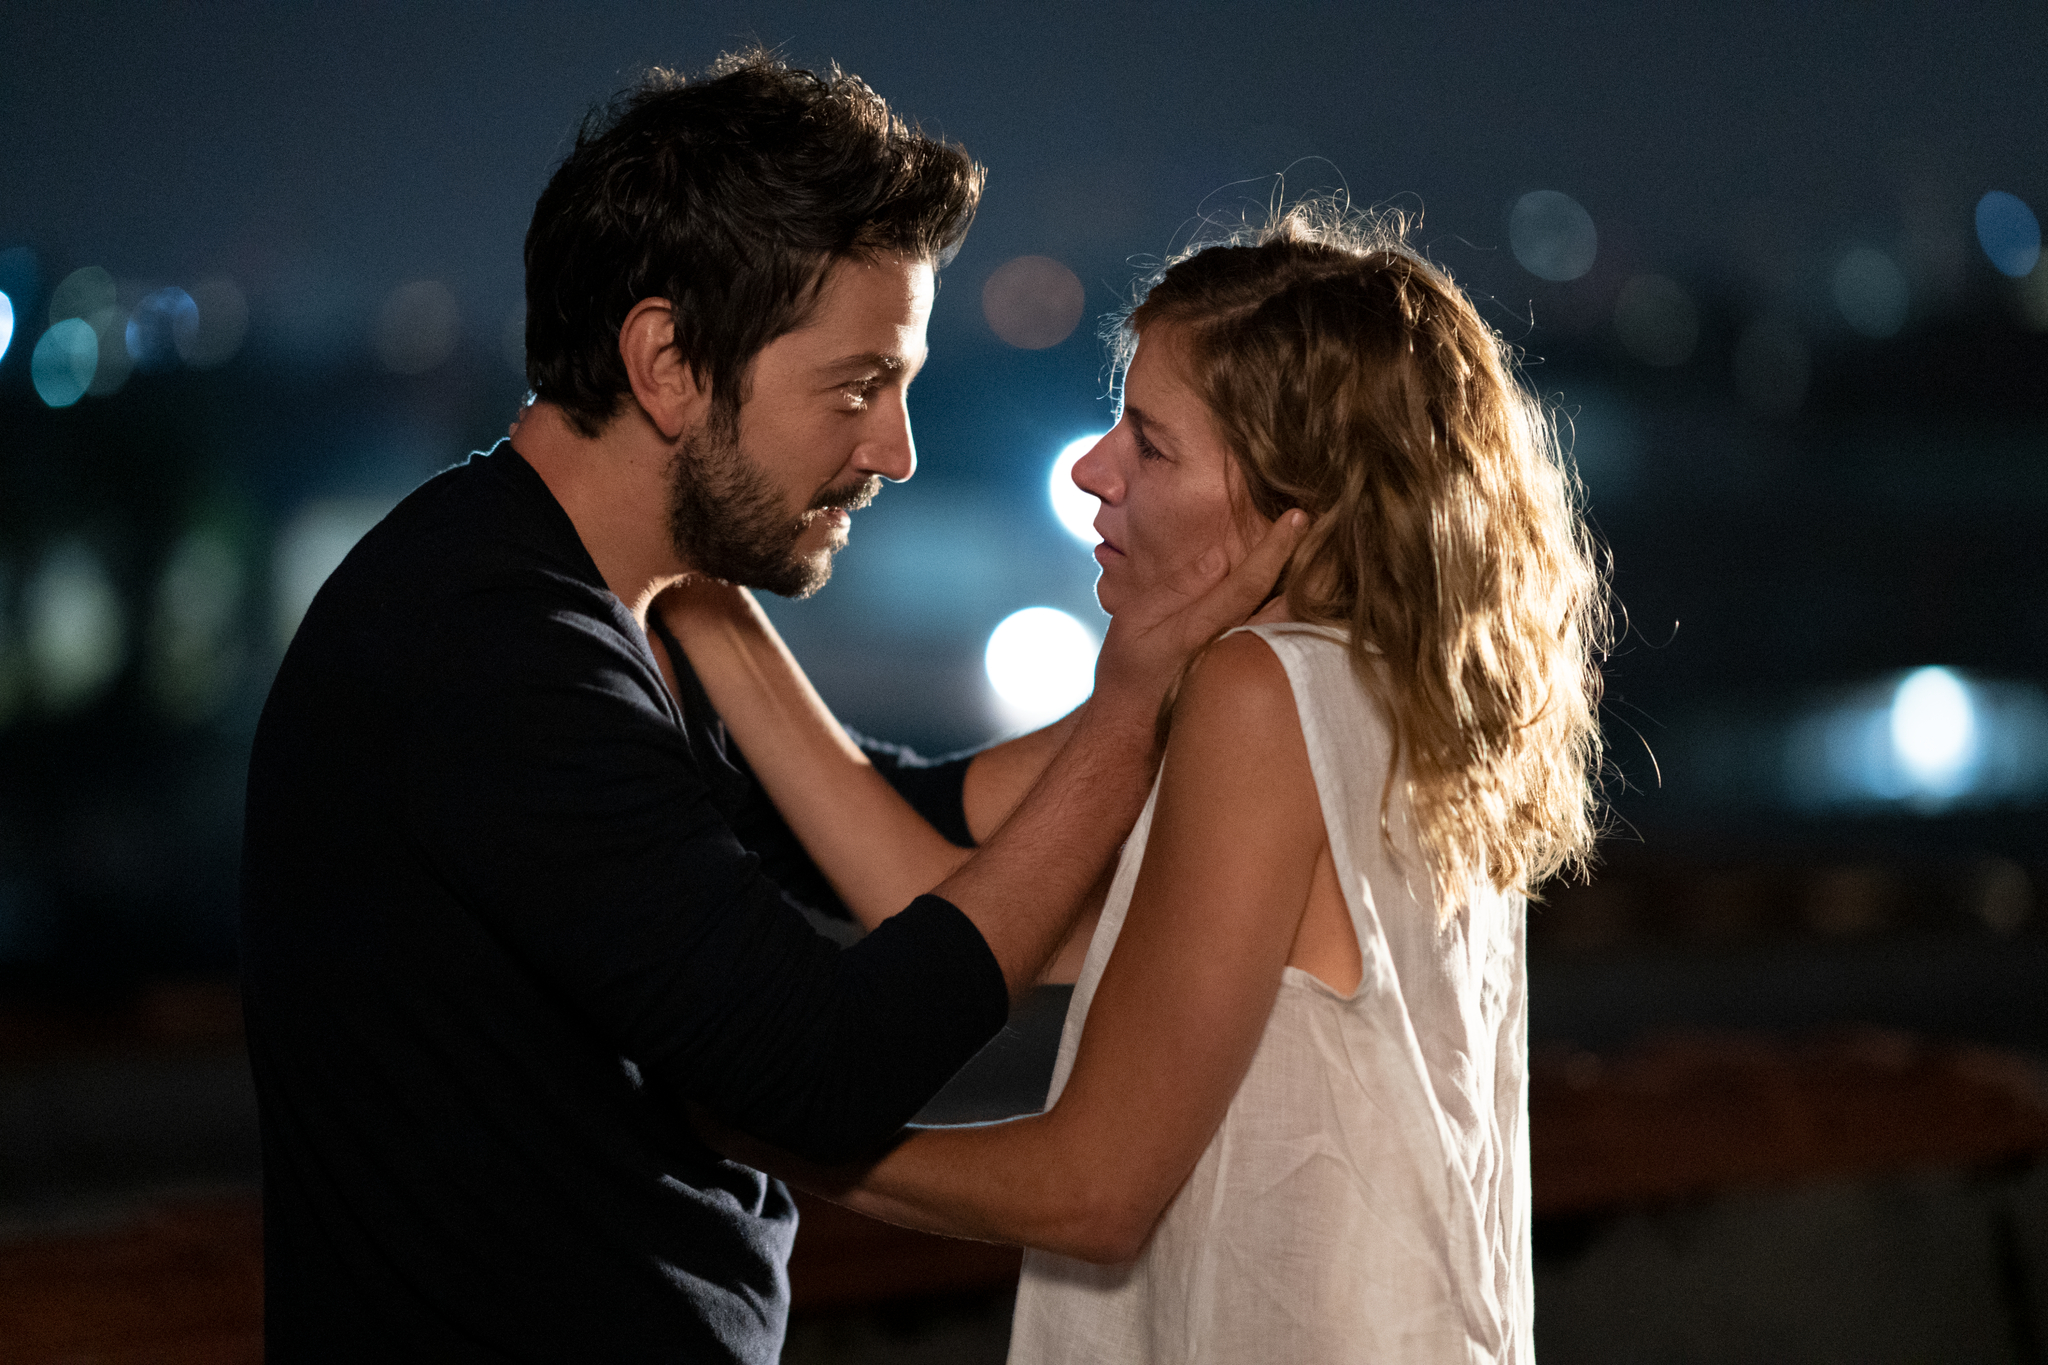 Sienna Miller S Wander Darkly Gets Fall Release From Lionsgate Variety